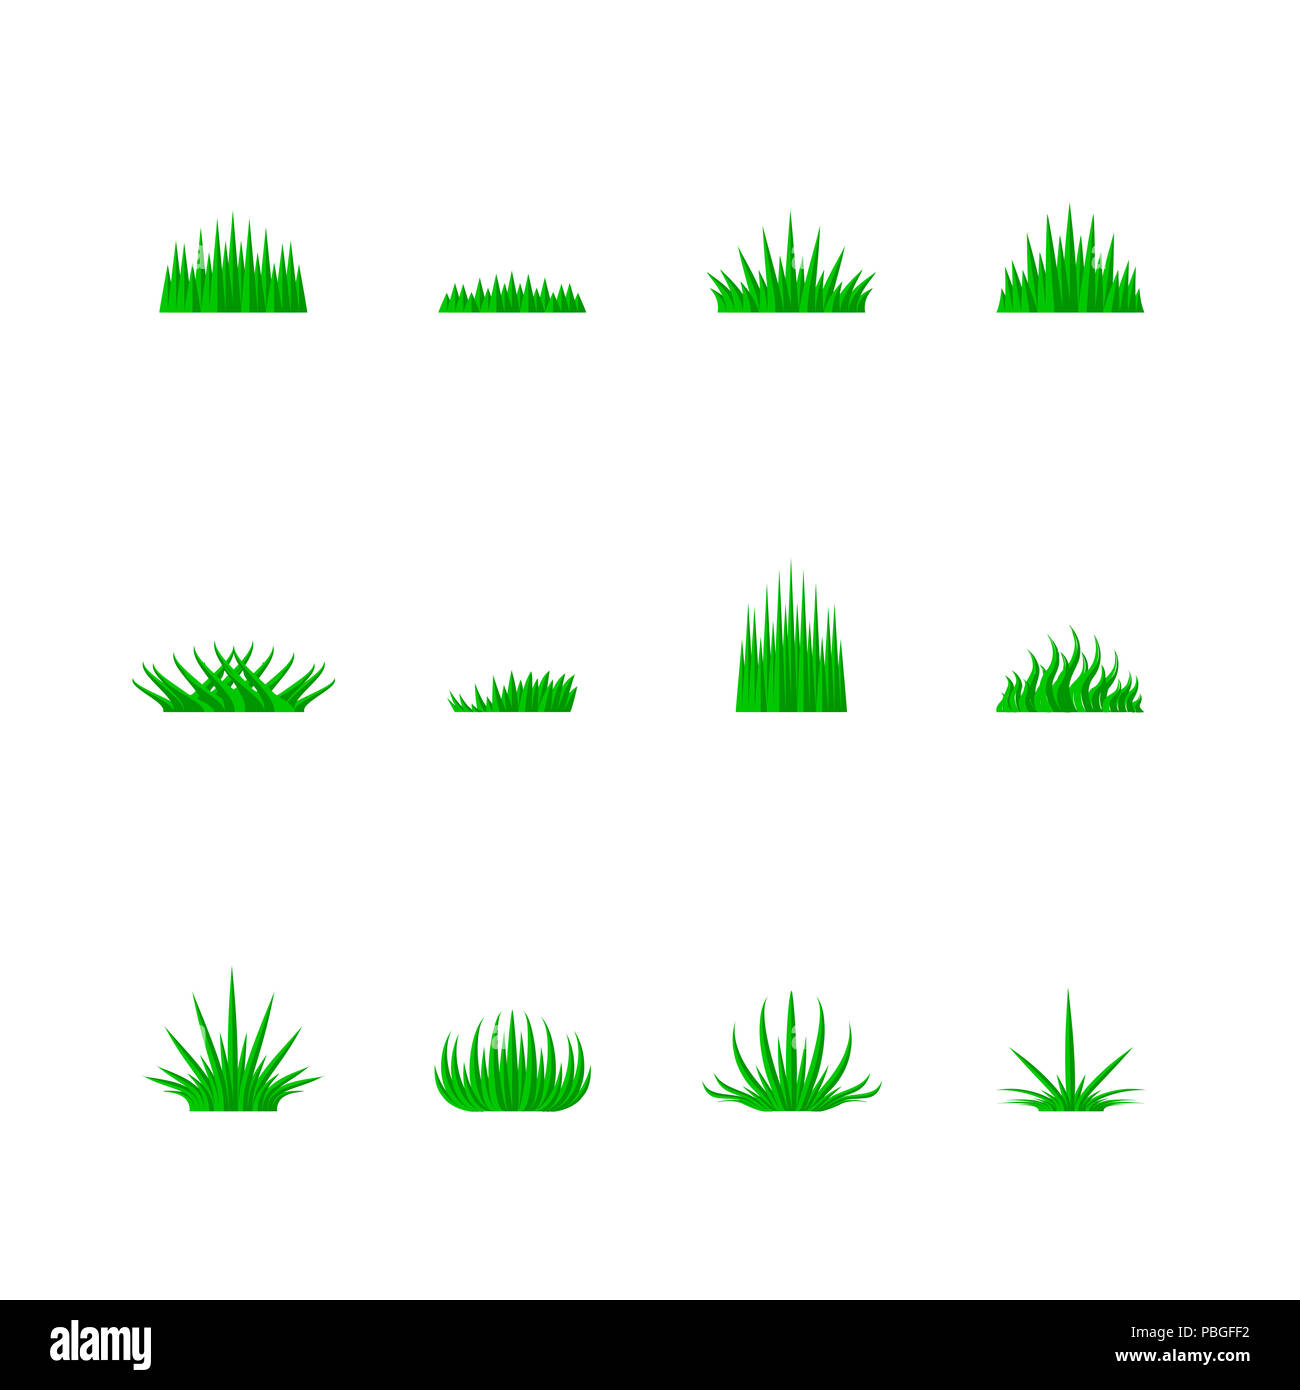 Lherbe Verte De Formes Diffrentes La Nature Icon Set Grass Bunchs